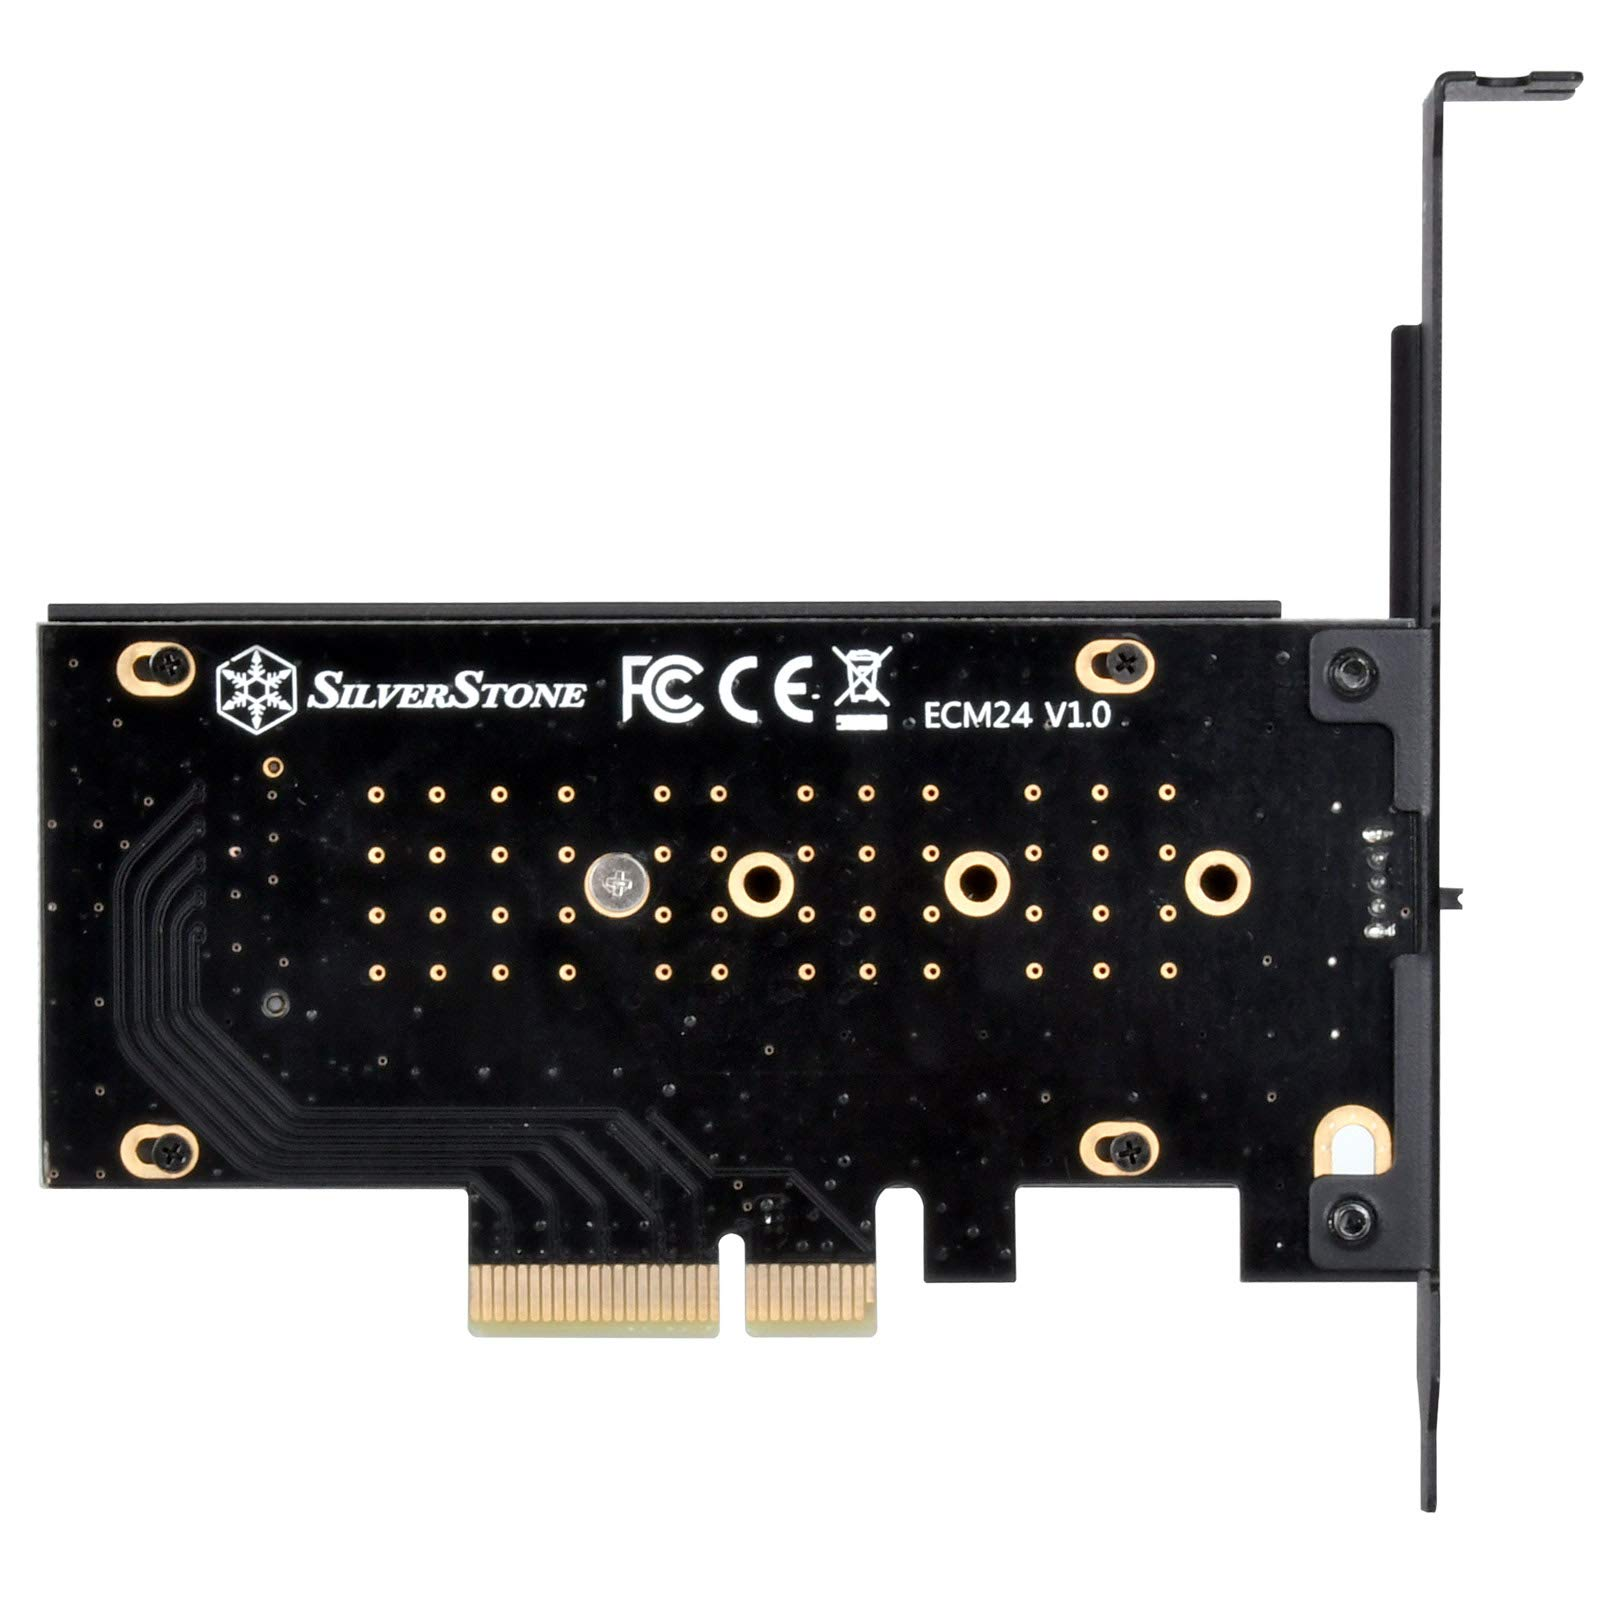 SilverStone Technology M.2 M Key PCIe NVMe Adapter to PCIe X4 with Integrated Heatsink SST-ECM24 by SilverStone Technology (Image #3)